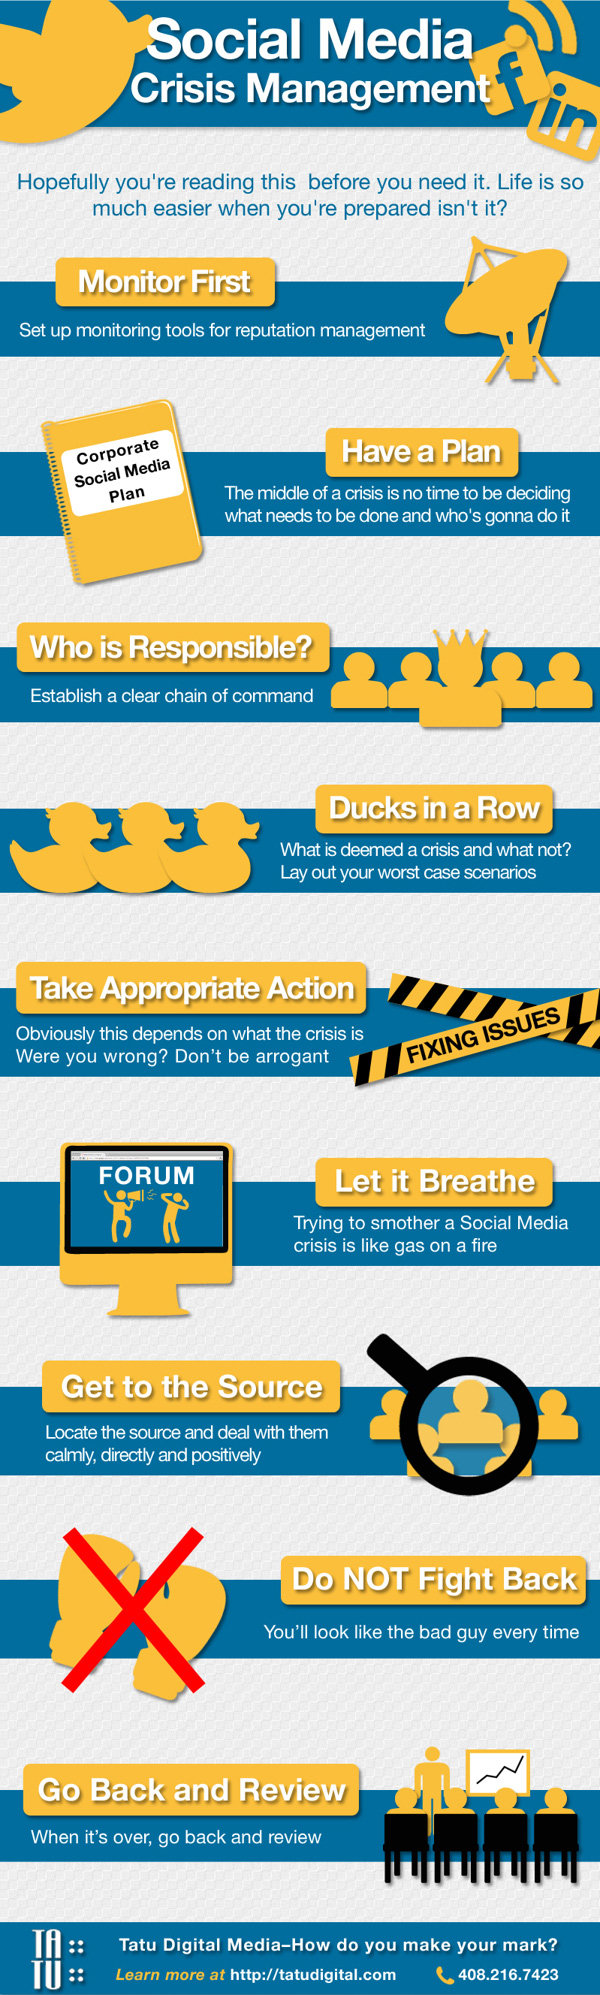 Social media crisis management #infographic